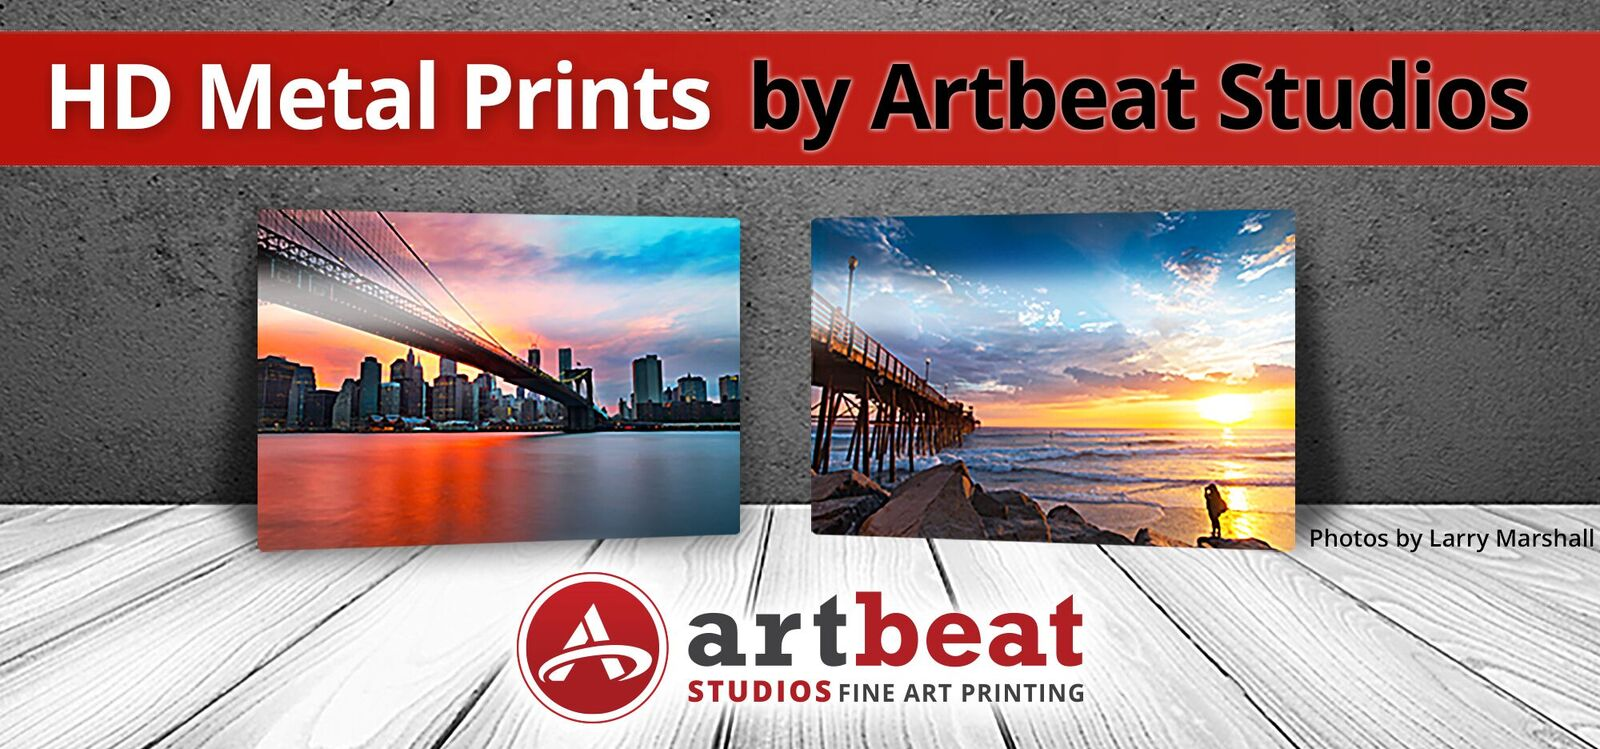 MetalPrints image